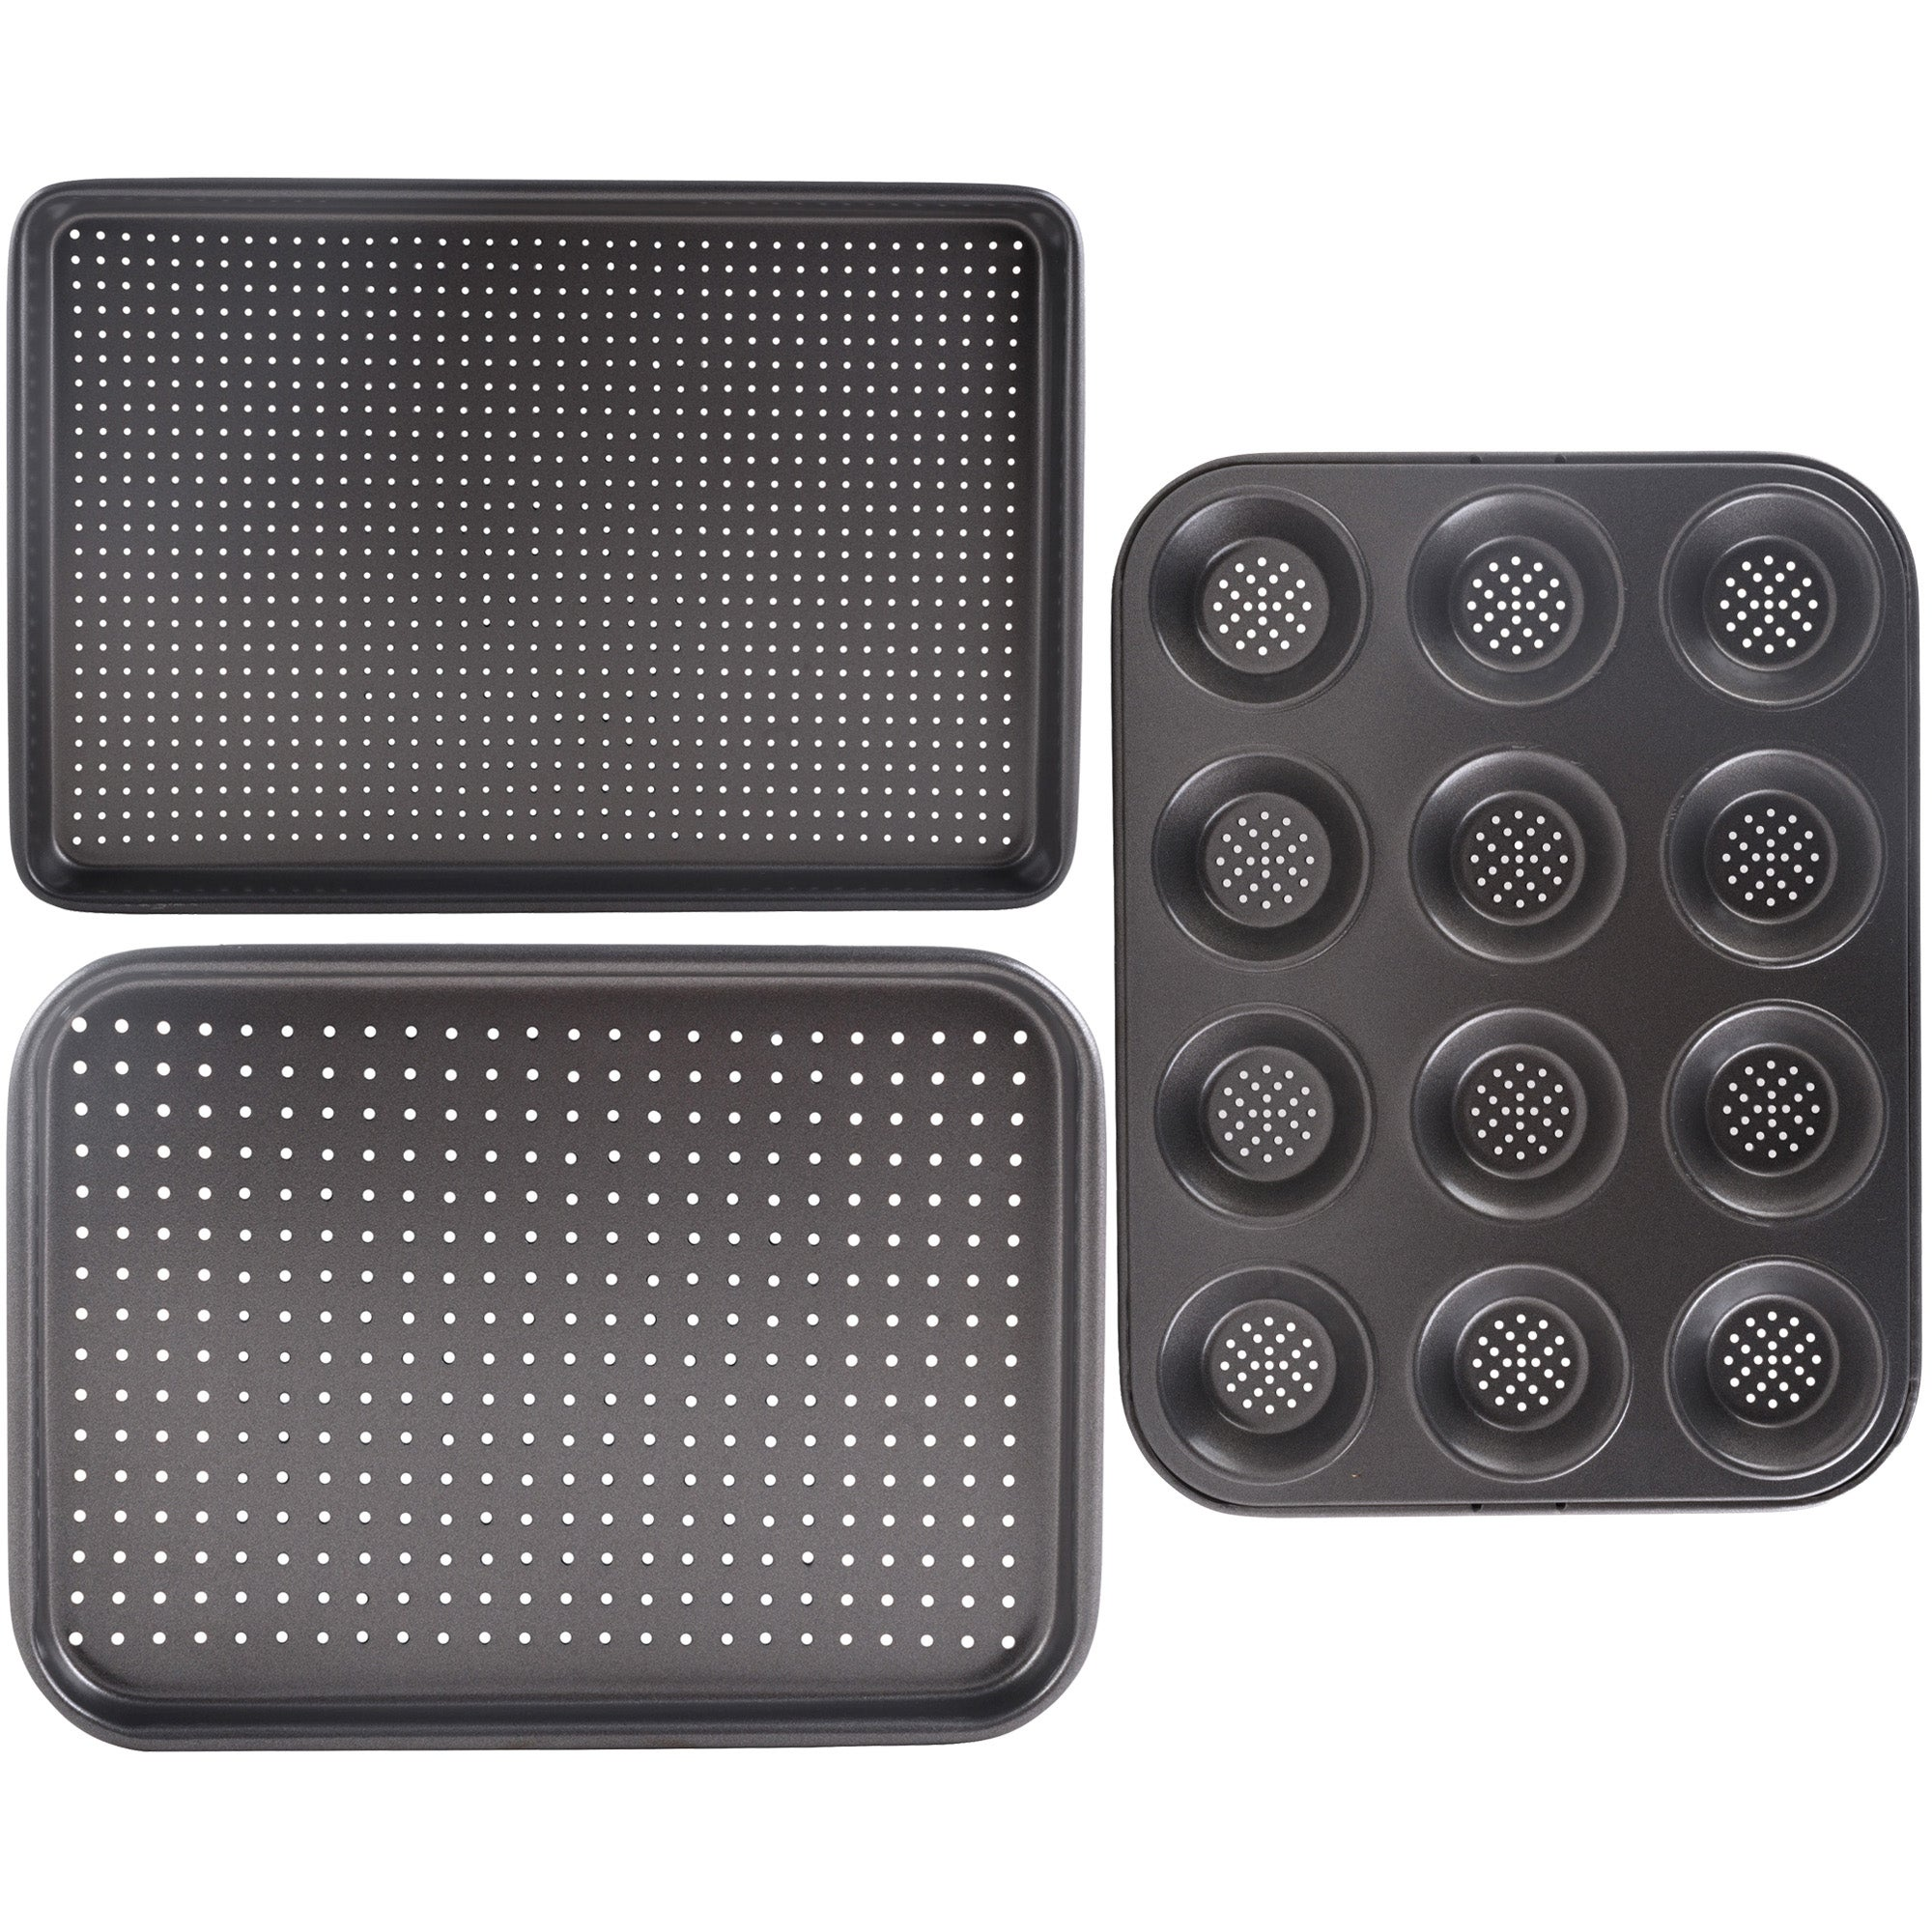 Infinity Ultimate Bakeware Collection